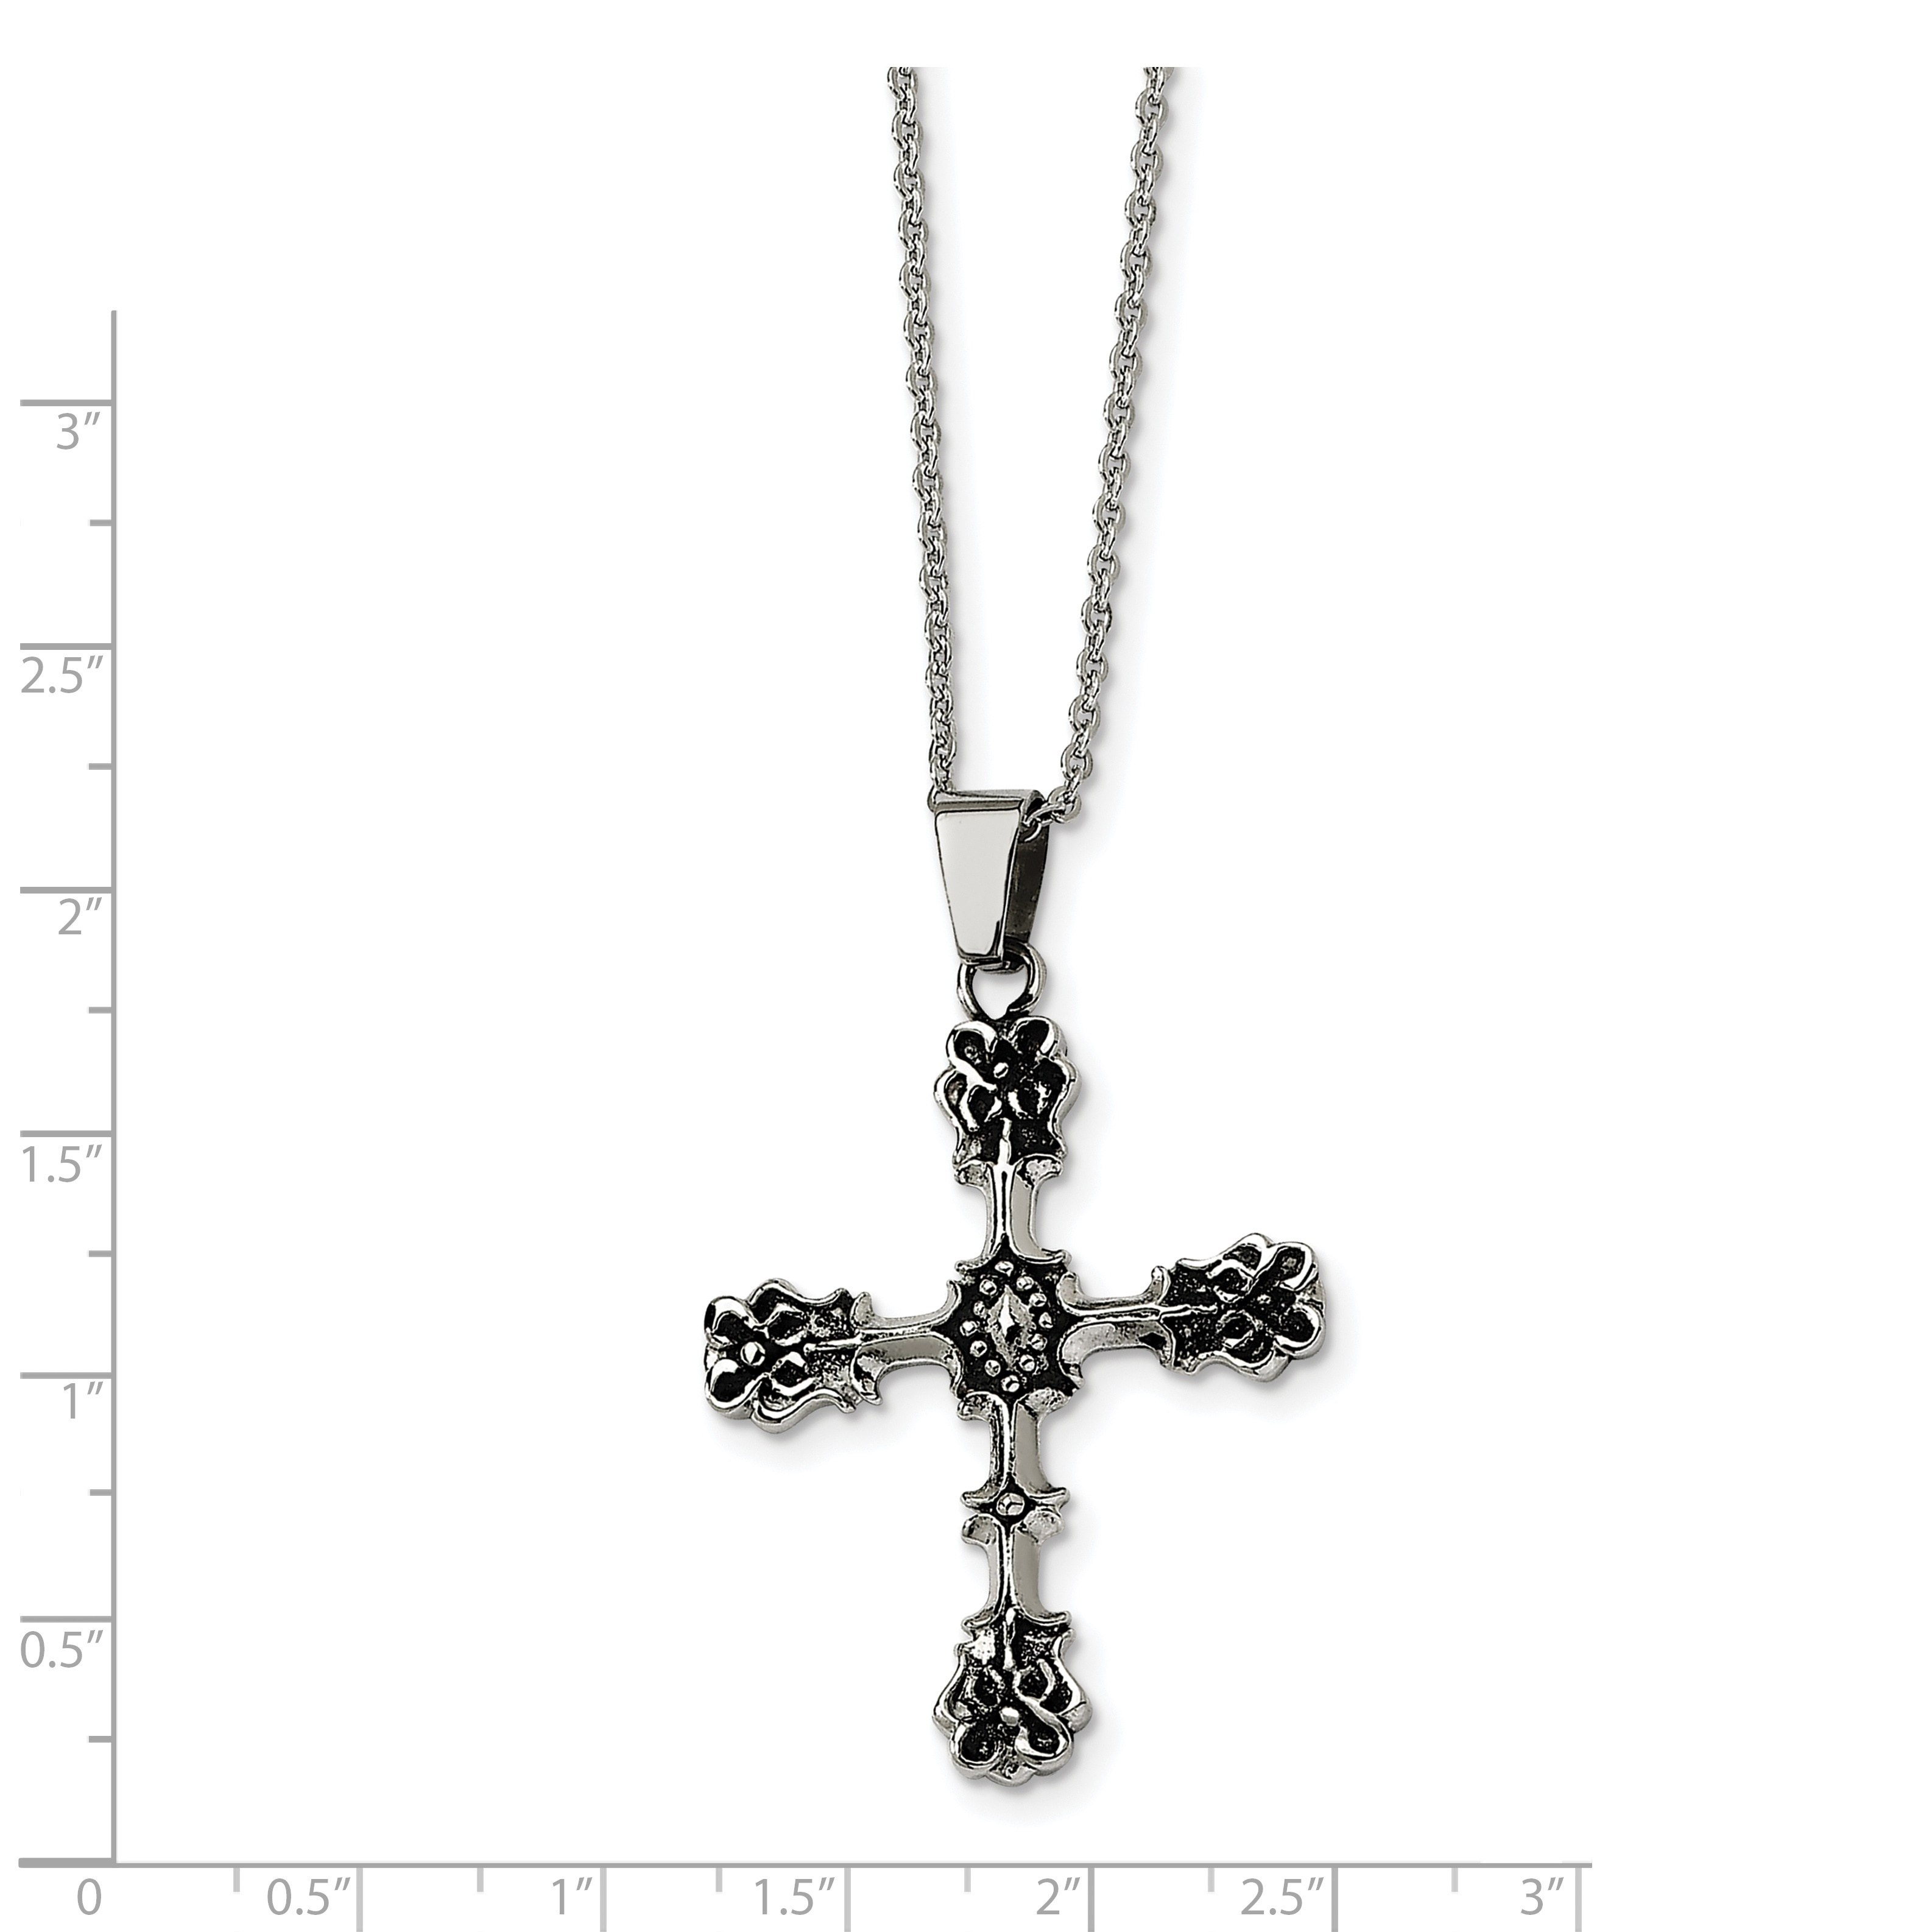 Stainless Steel Antiqued Cross Pendant Necklace 52x33mm 22 Inches